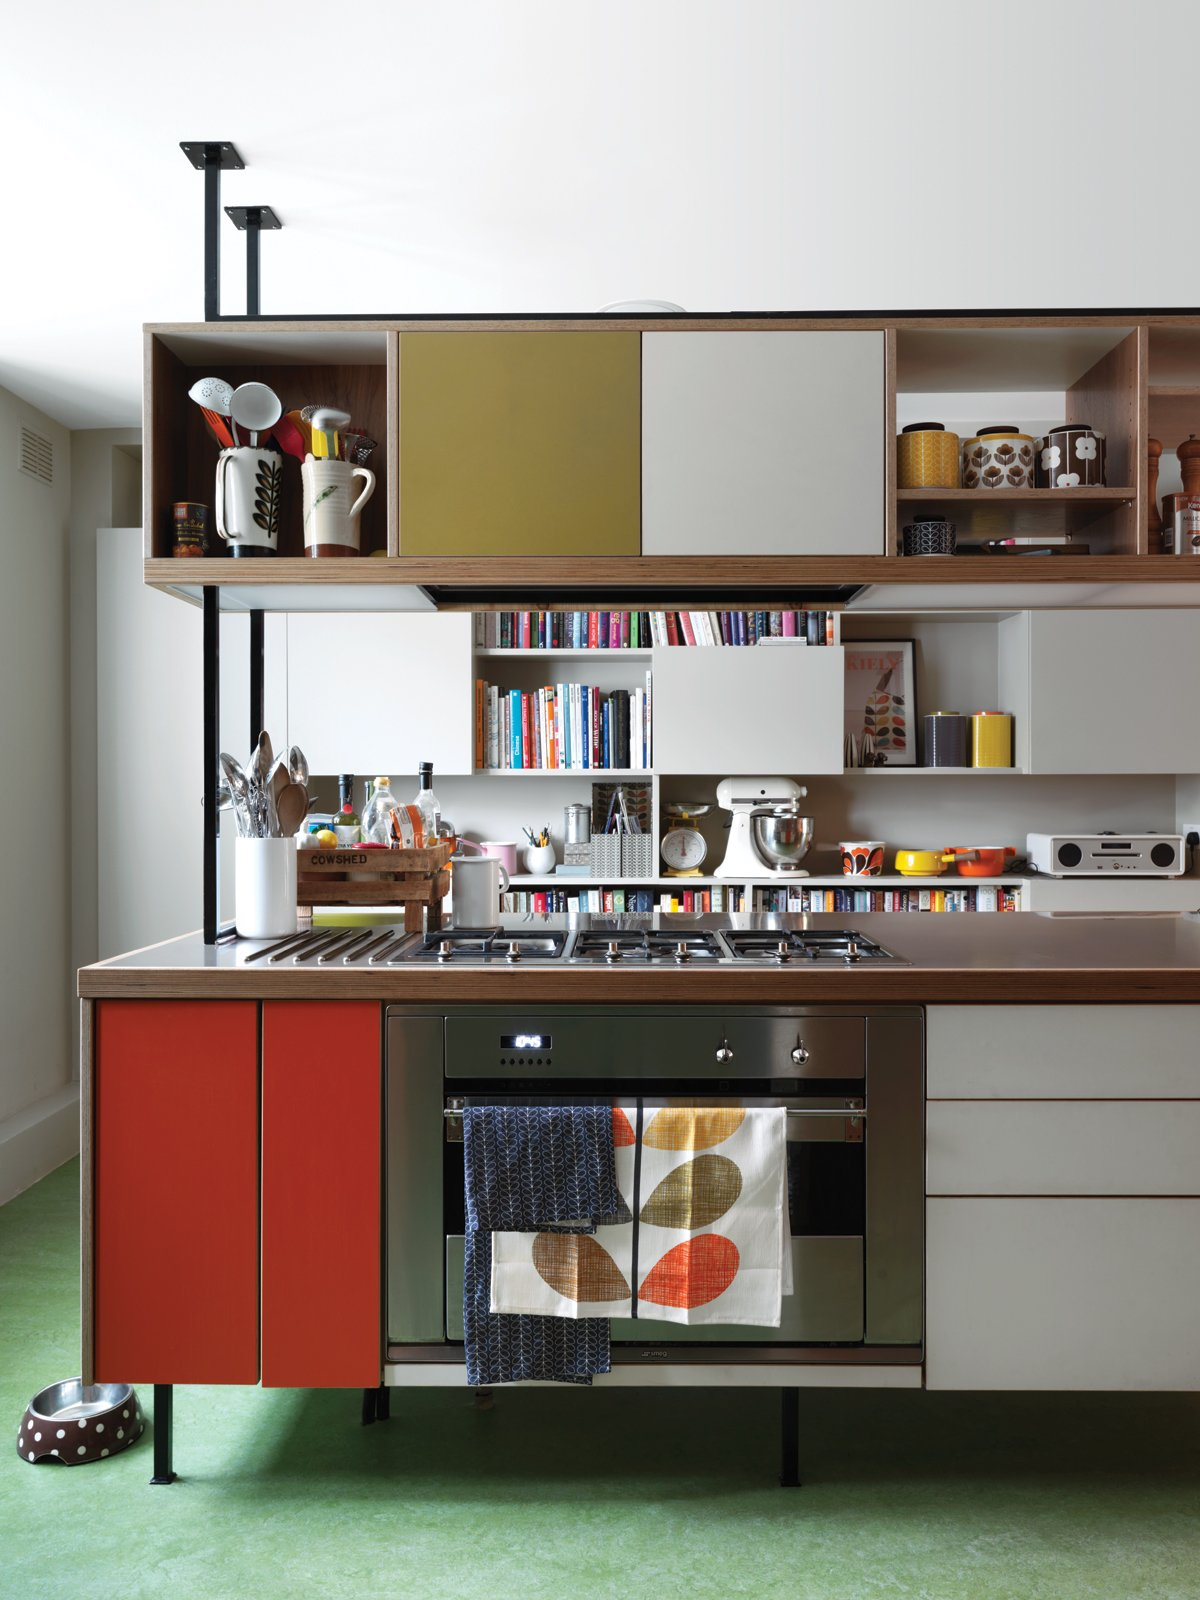 "Kitchen and Colorful Cabinet Kitchen Confidential   Kiely and architect Maxim Laroussi designed the kitchen unit. ""I originally didn't want an island, but I liked what we did because it feels like a piece of furniture. It's cozy to cook around,"" Kiely says. Panels of orange and olive Formica accent the 1950s-inspired piece, which houses a cooktop by Smeg. A checkerboard of closed cabinets and open shelves offers storage against the far wall for Kiely's collection of dishes, knickknacks, cookbooks, and small appliances, like the KitchenAid stand mixer and radio by Vita Audio. The floor is green Marmoleum, selected because it feels warm underfoot. Kiely's own Stem dish towels and ceramic storage jars add more lively color to the room.  Photo 4 of 5 in A Textile Designer's Home Is Unapologetically Colorful"